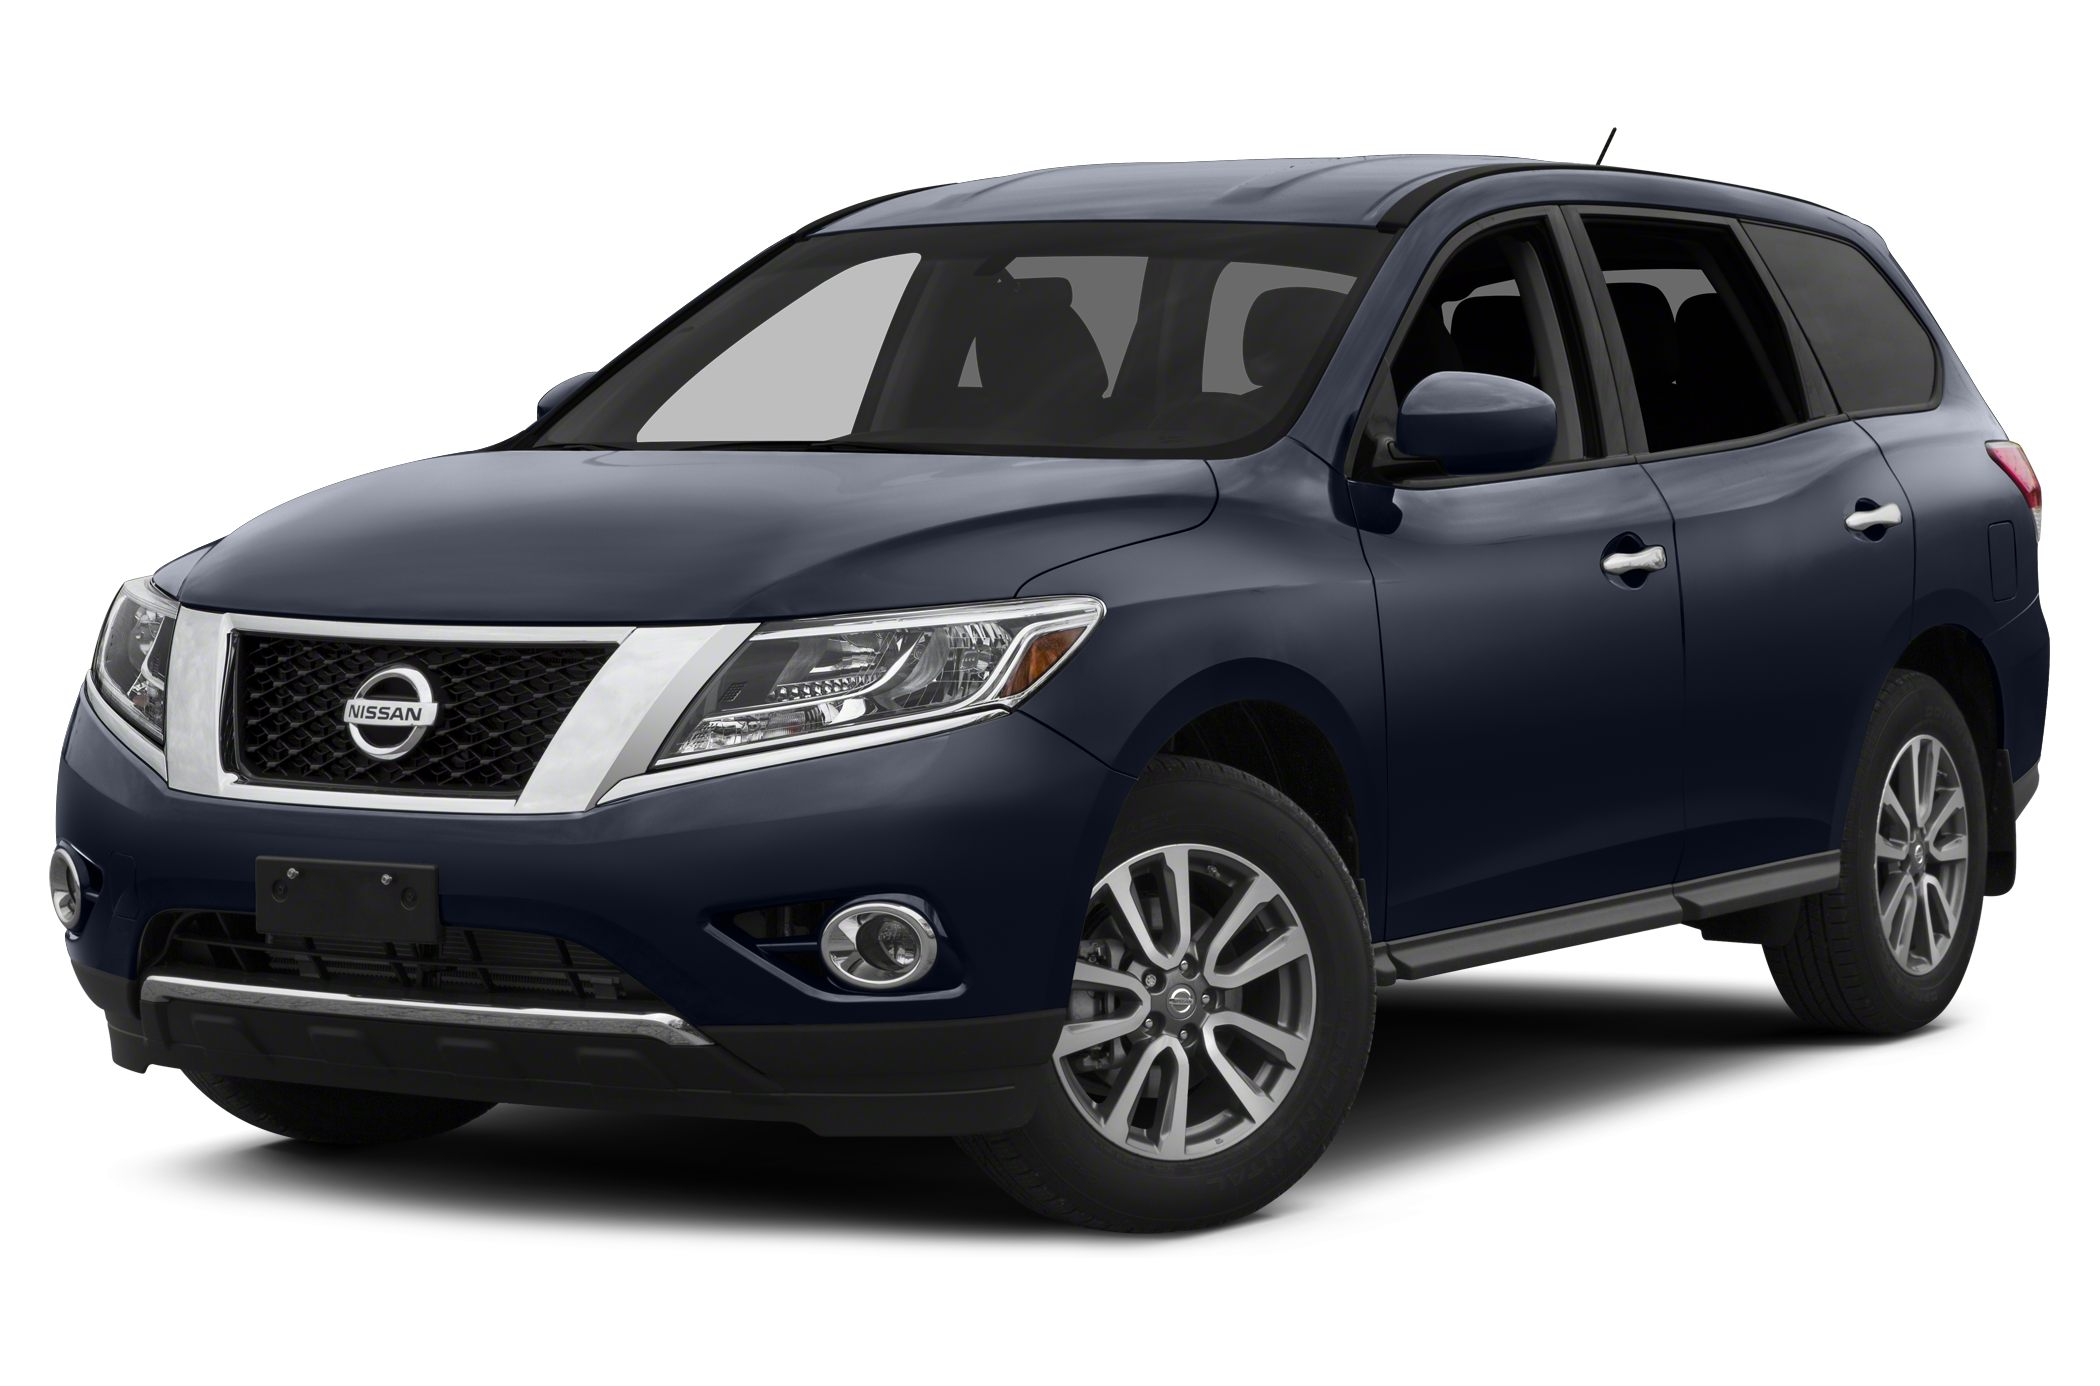 2015 Nissan Pathfinder SL SUV for sale in Lawrence for $36,710 with 3 miles